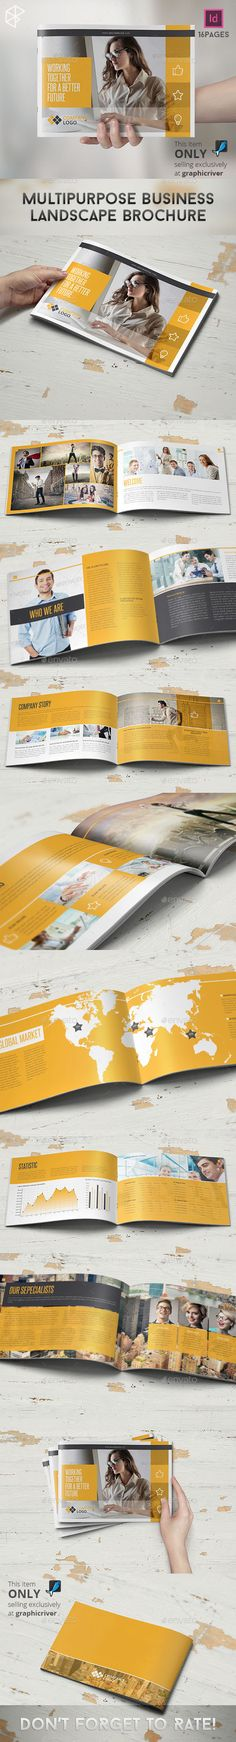 Project Proposal InDesign Template v2 Project proposal, Indesign - landscape brochure